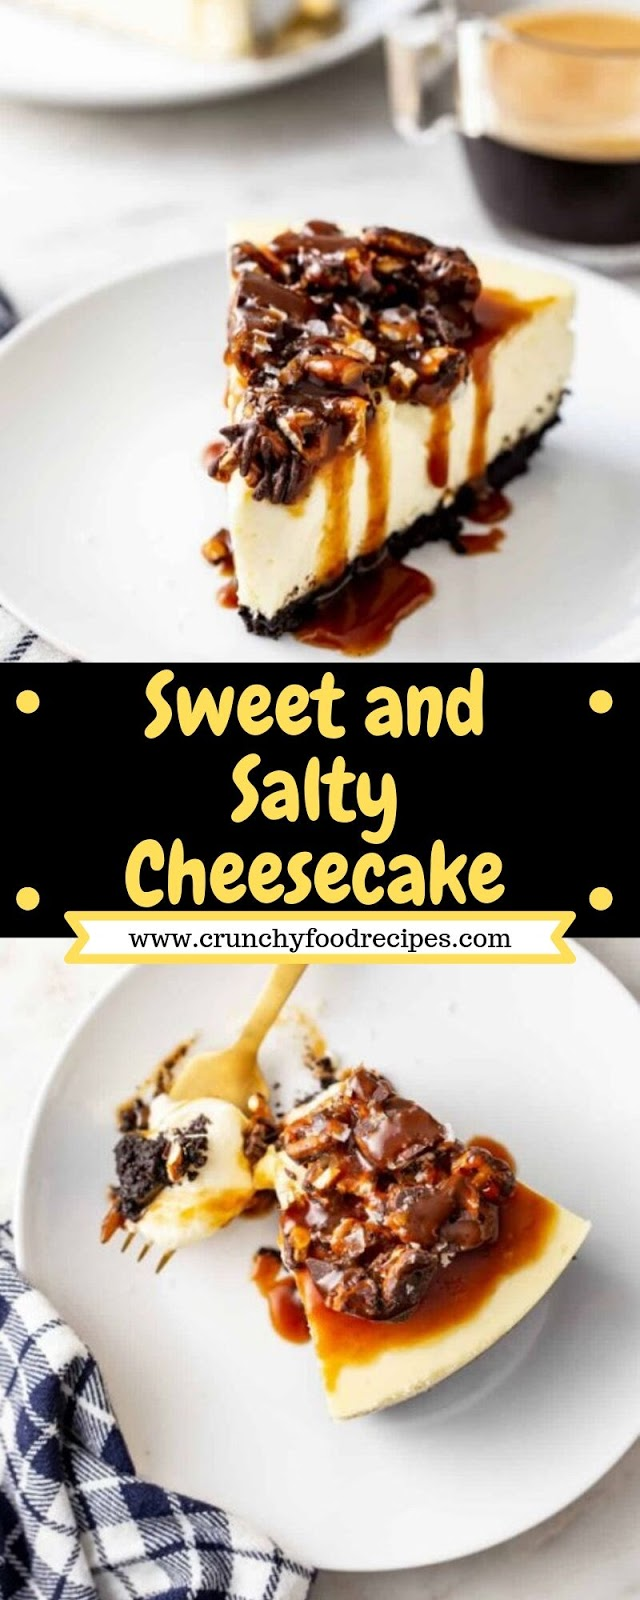 Sweet and Salty Cheesecake